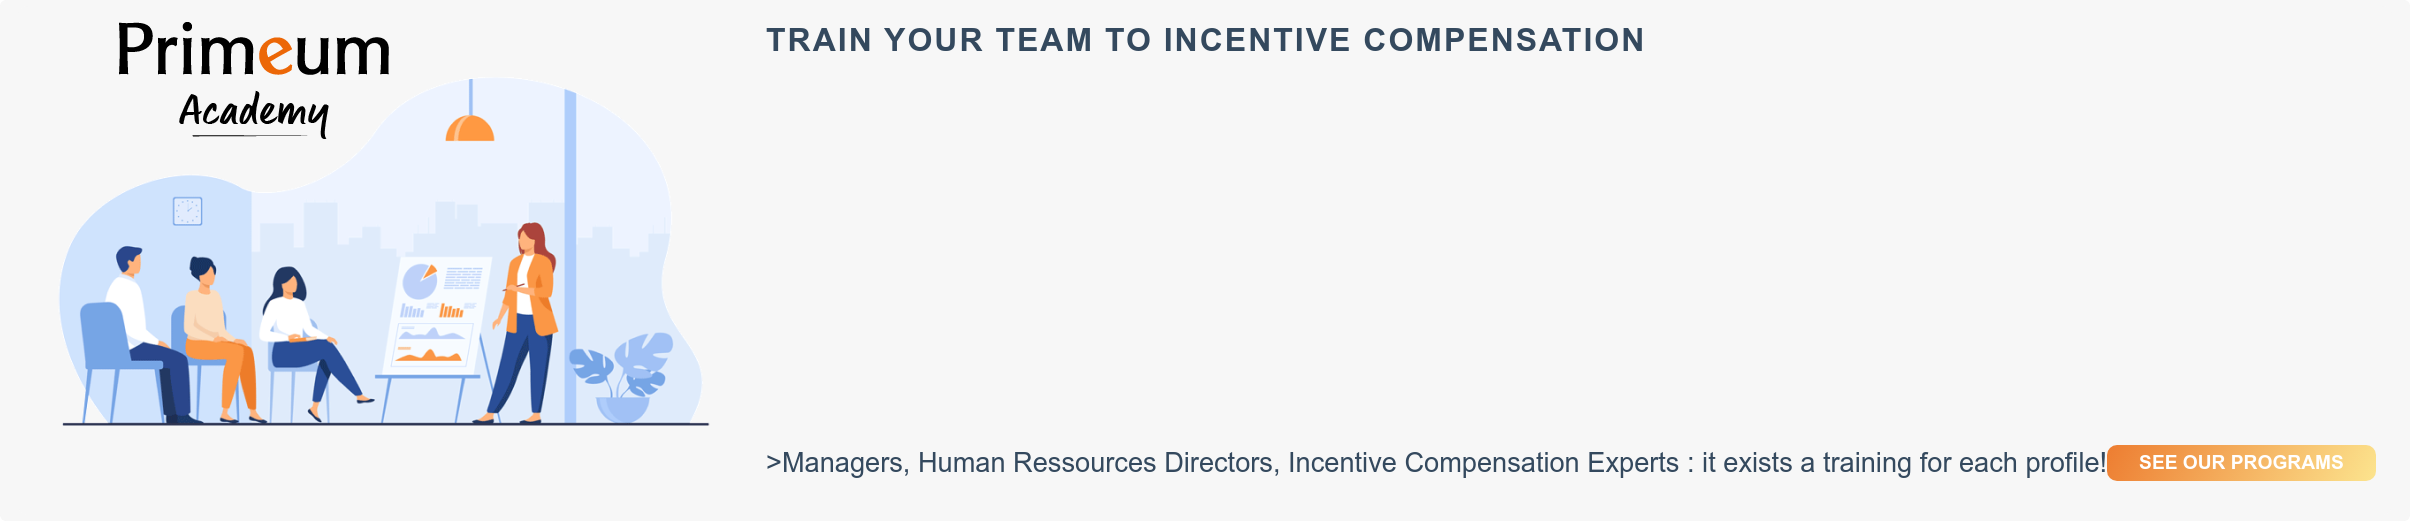 TRAIN YOUR TEAM TO INCENTIVE COMPENSATION  >Managers, Human Ressources Directors, Incentive Compensation Experts : it  exists a training for each profile!  SEE OUR PROGRAMS